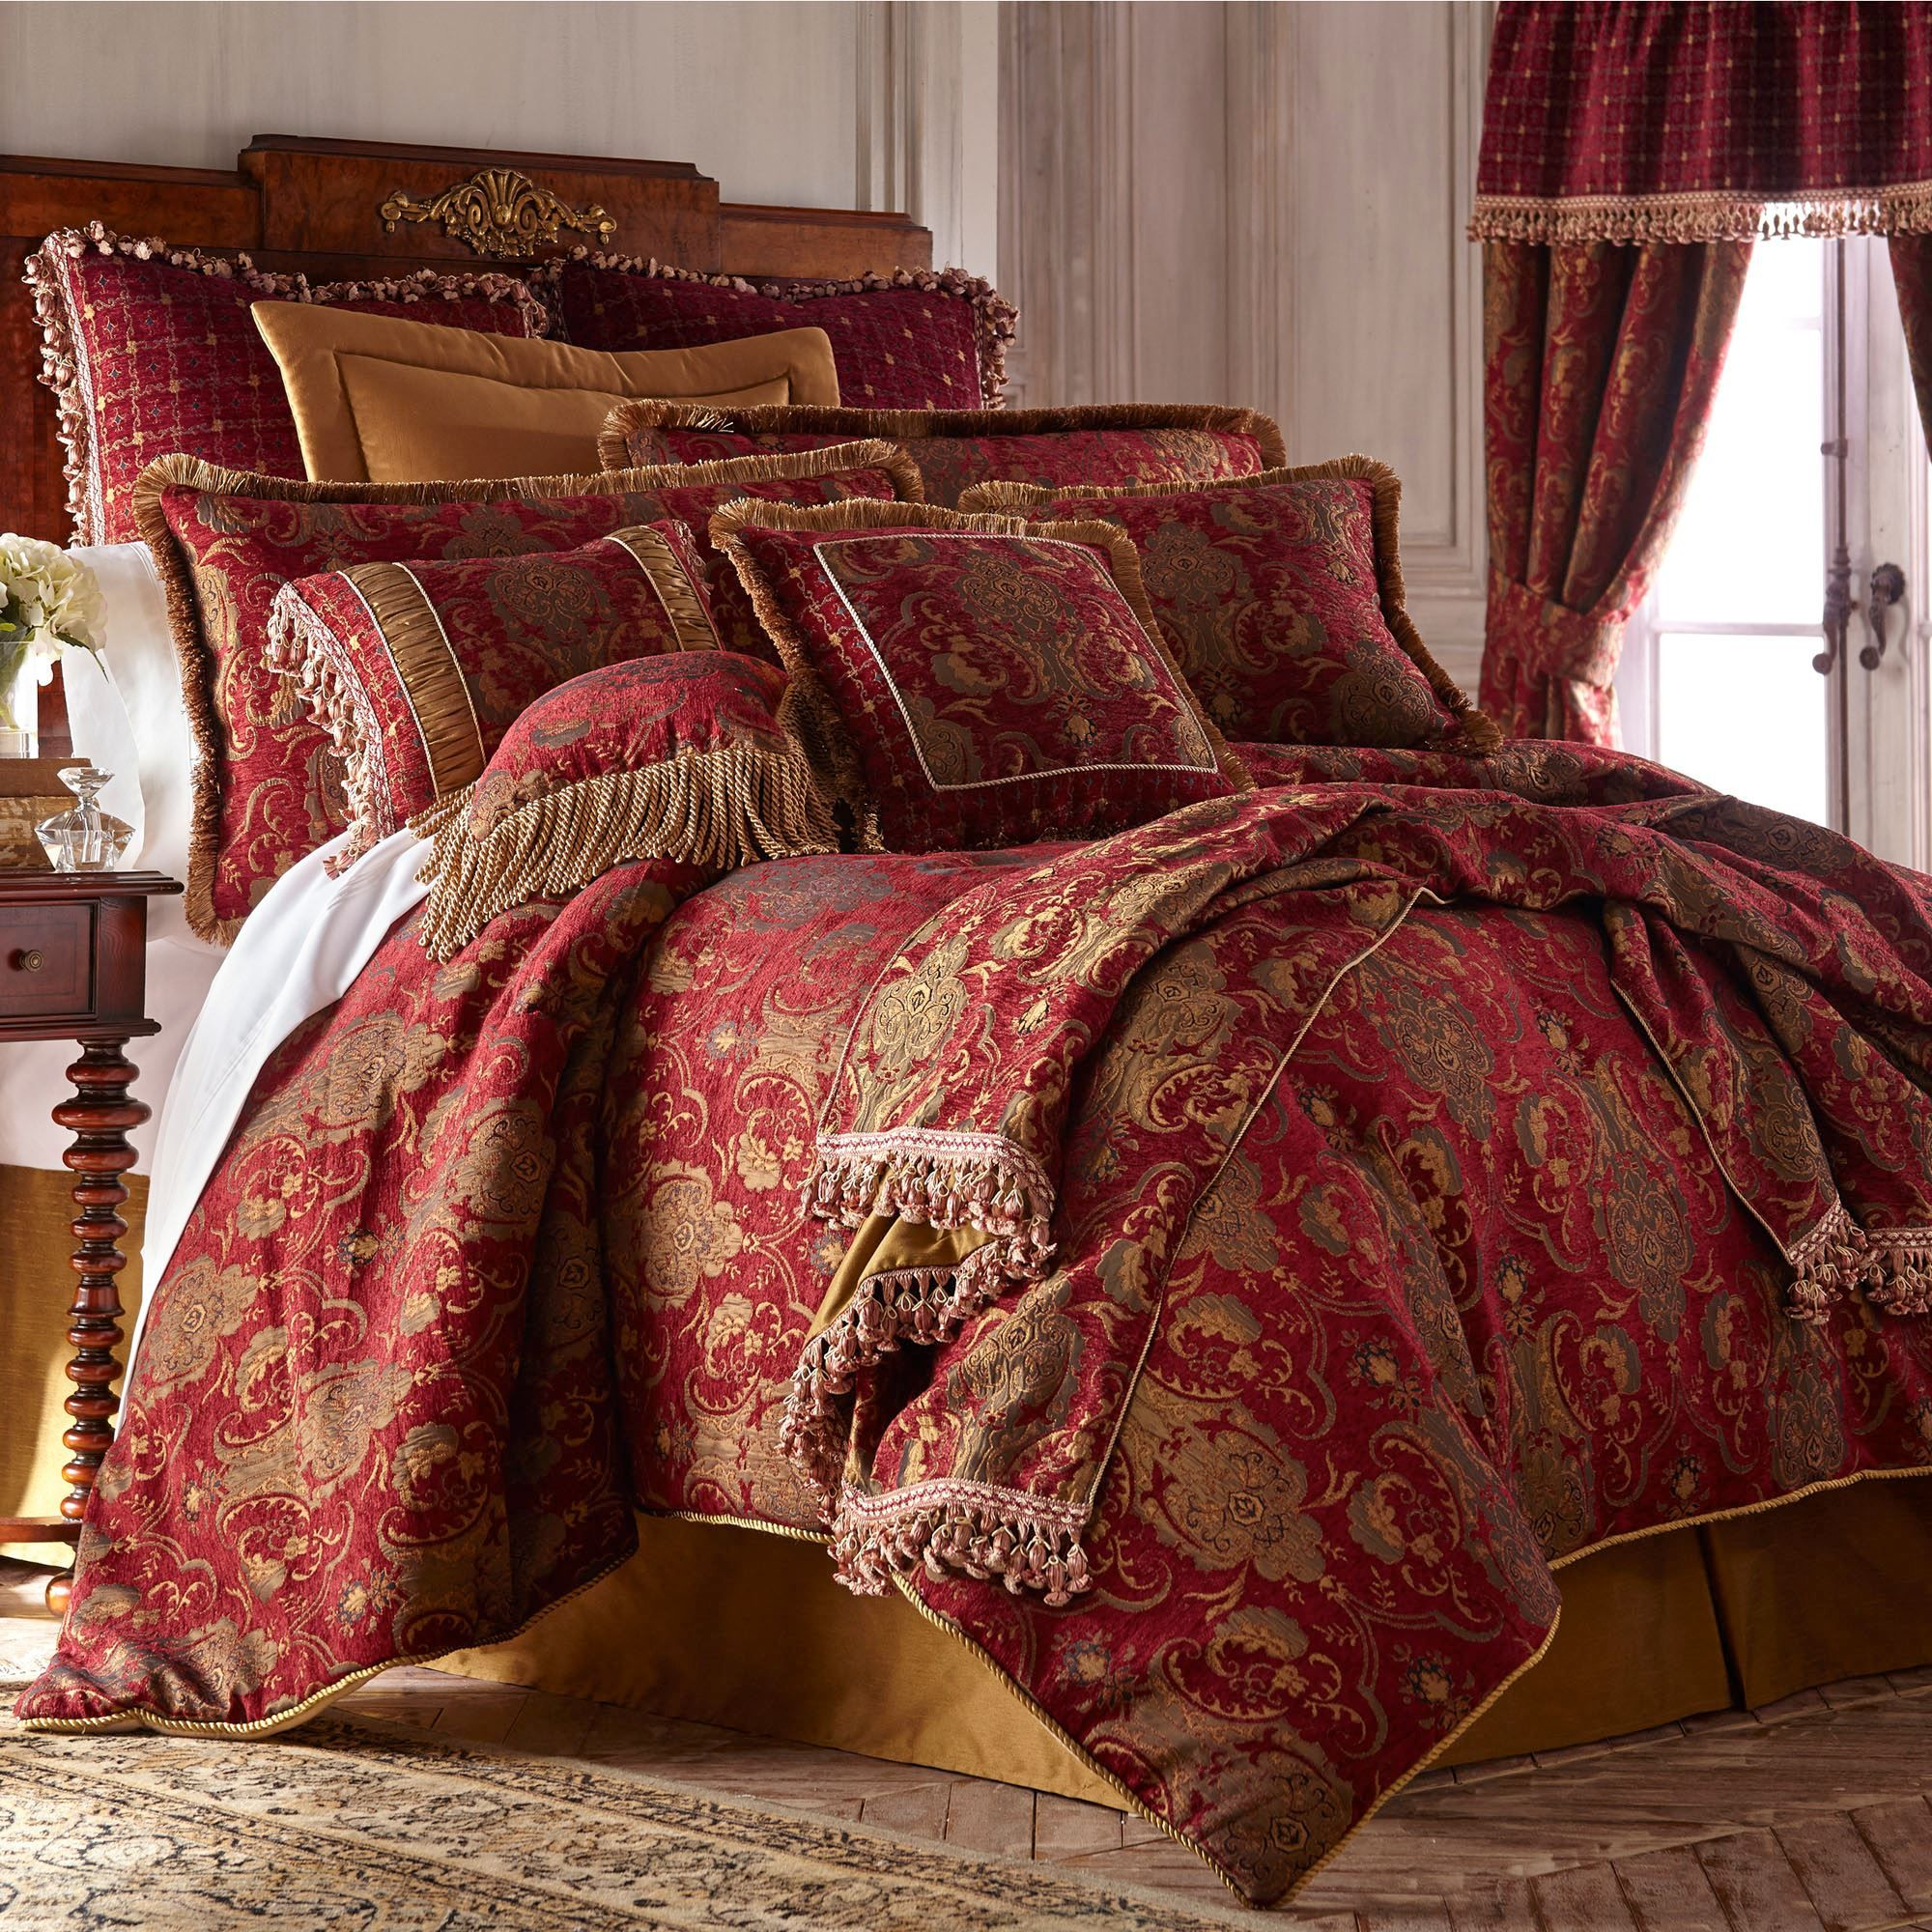 China Art Ruby Red Asian Inspired Comforter Bedding | Red ... : red quilt sets - Adamdwight.com